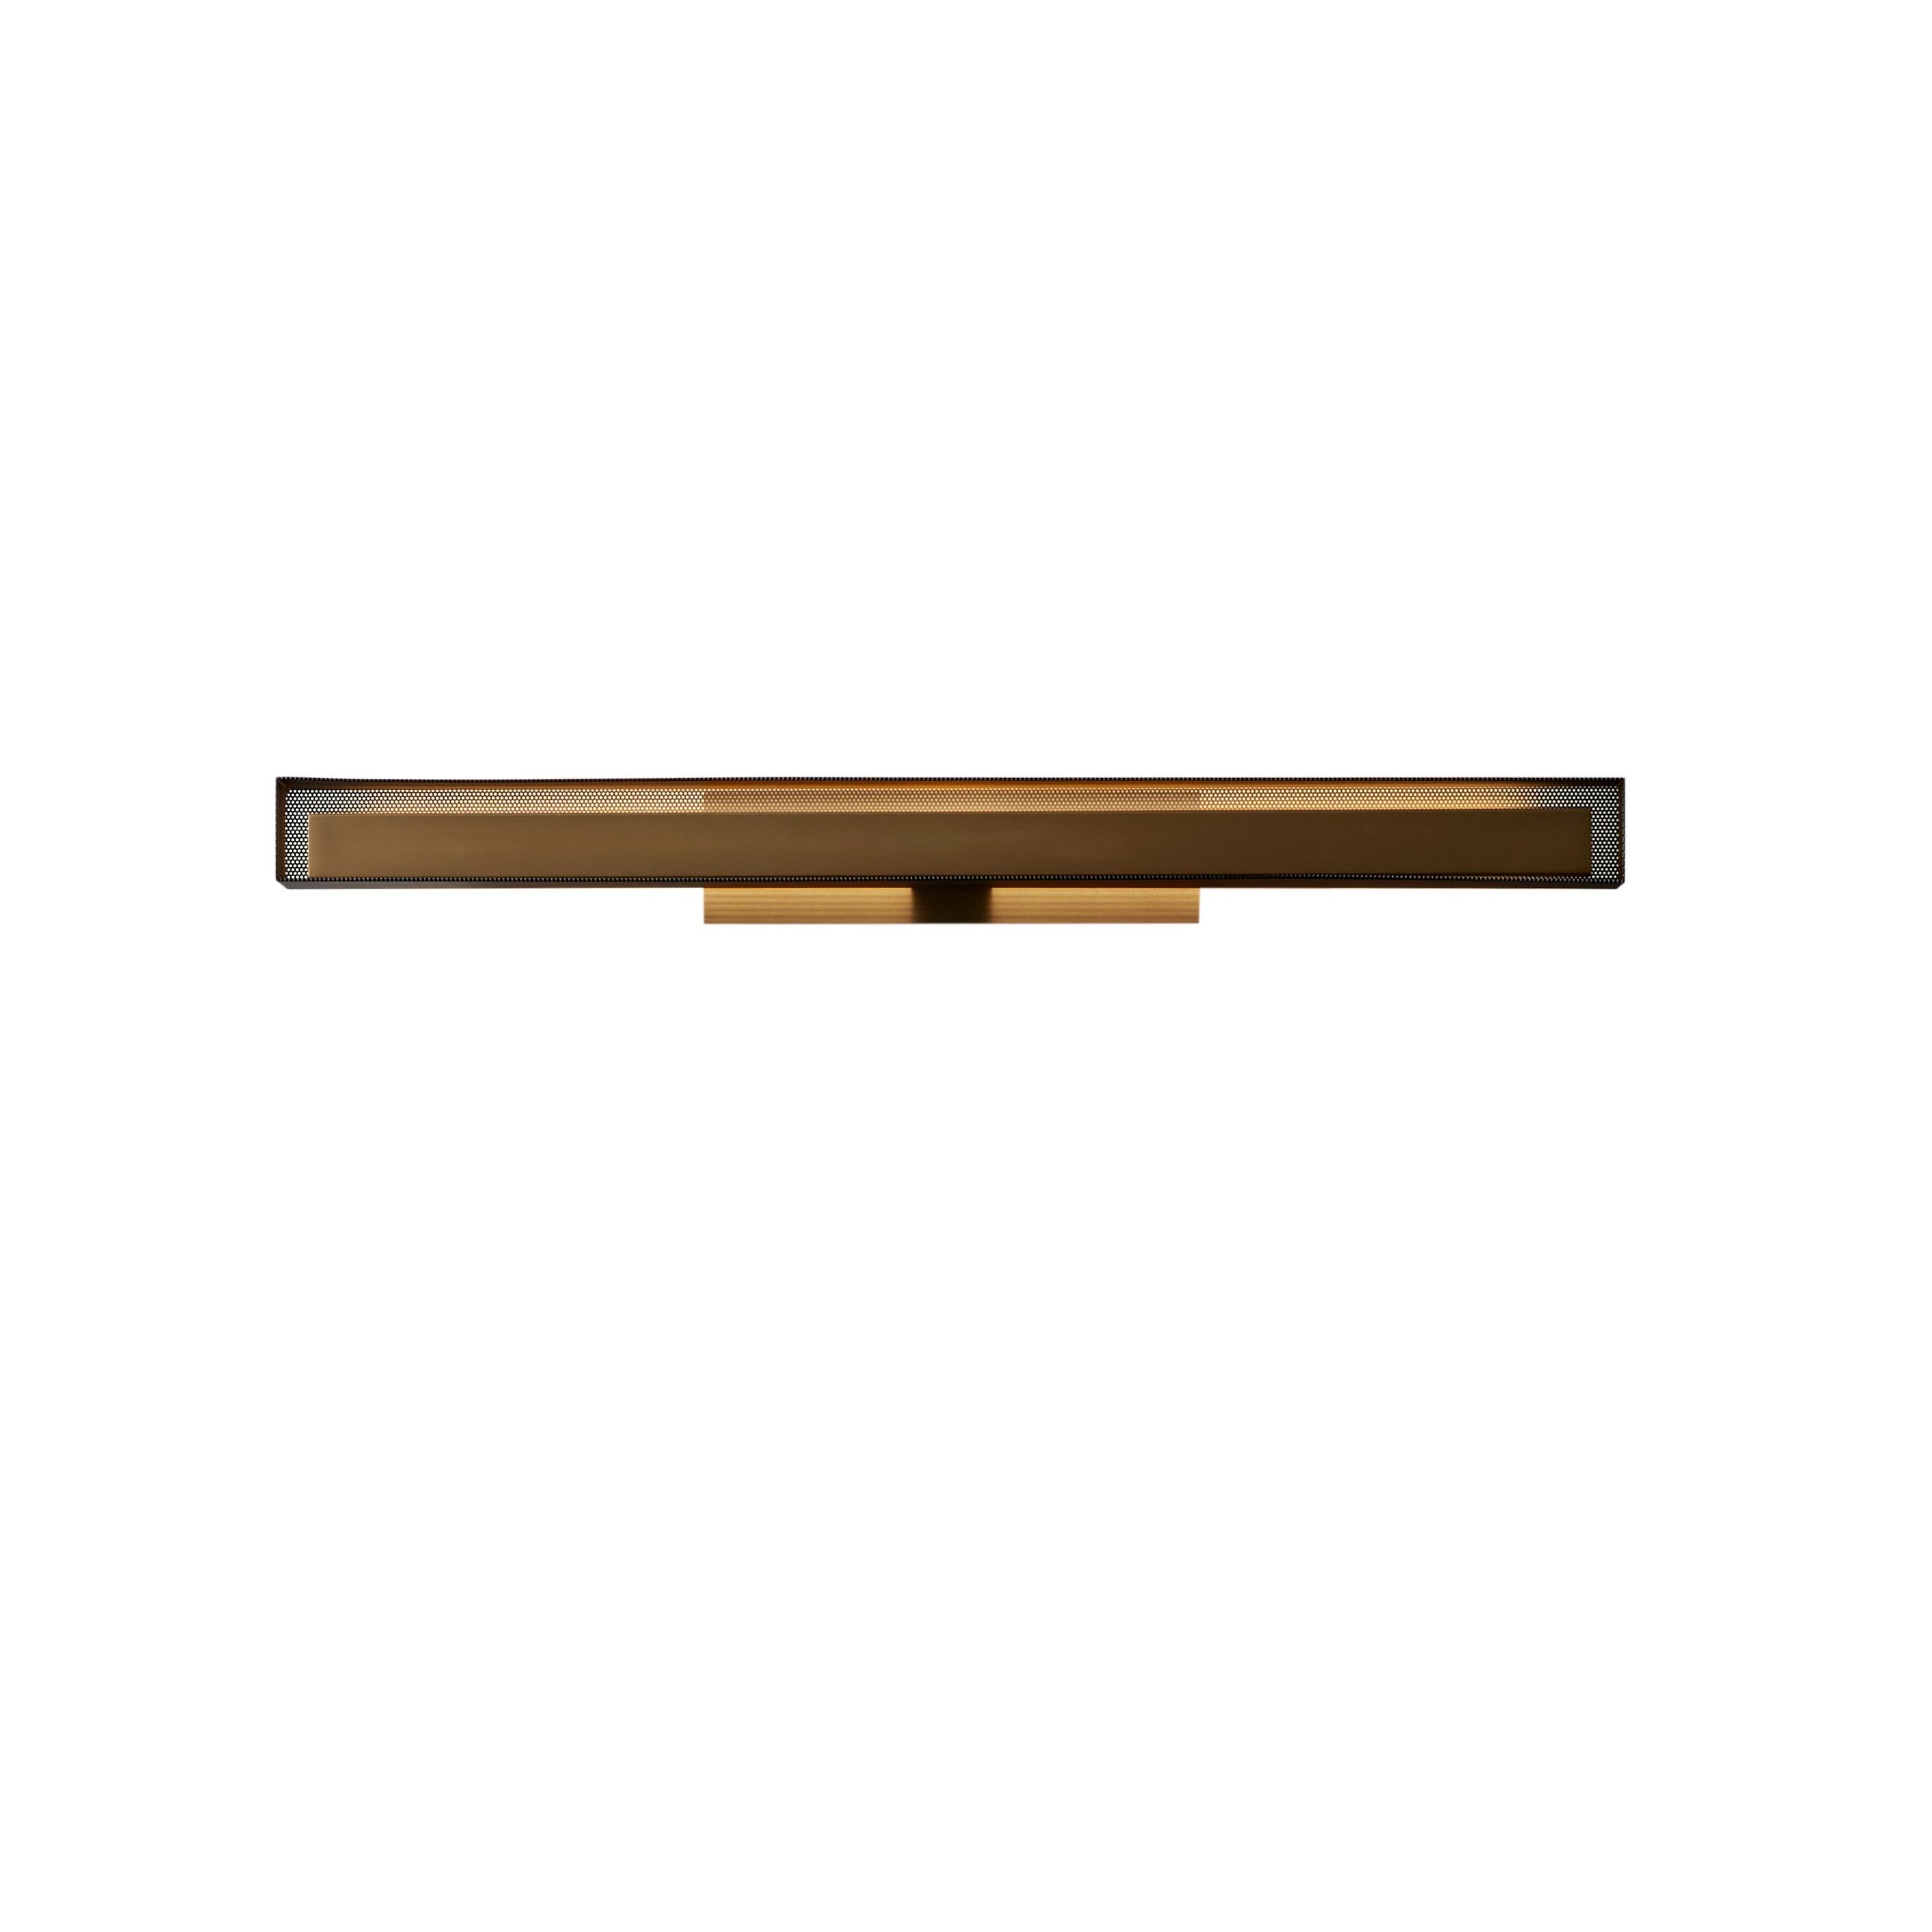 VeniceM Urban Lightline Wall Light in Burnished Brass & Metal by Massimo Tonetto